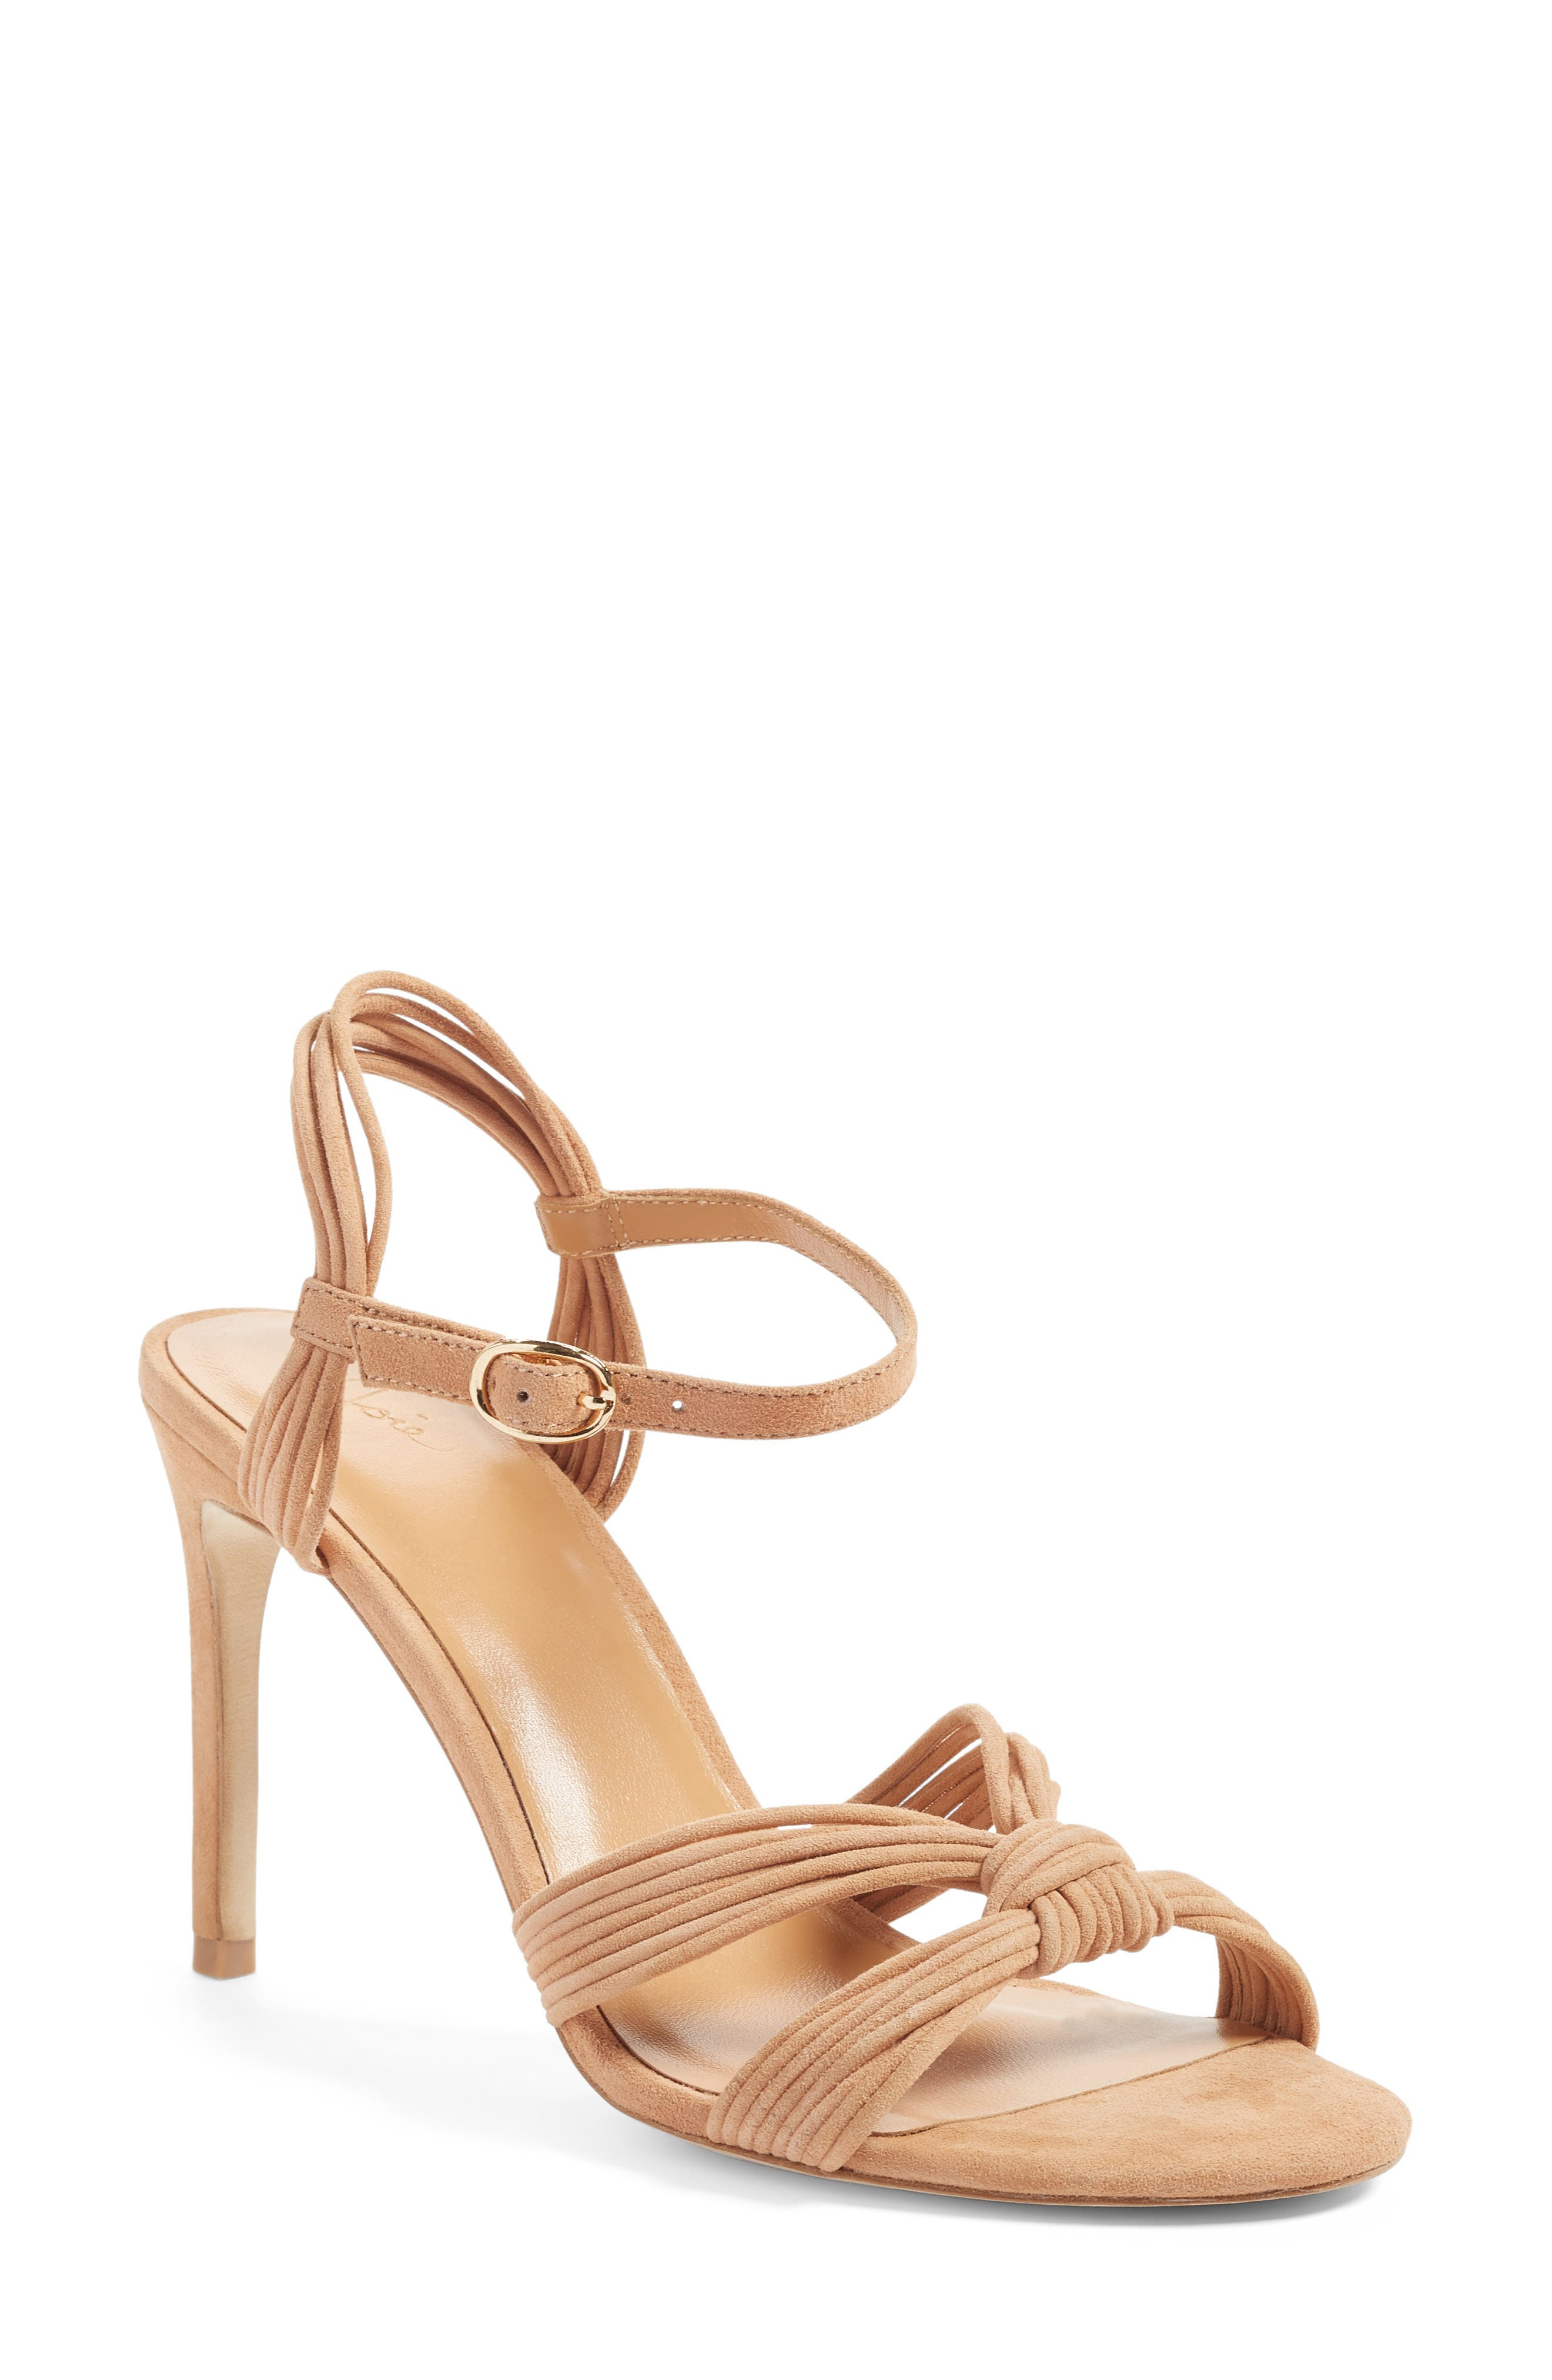 Alternate Image 1 Selected - Joie Strappy Sandal (Women)